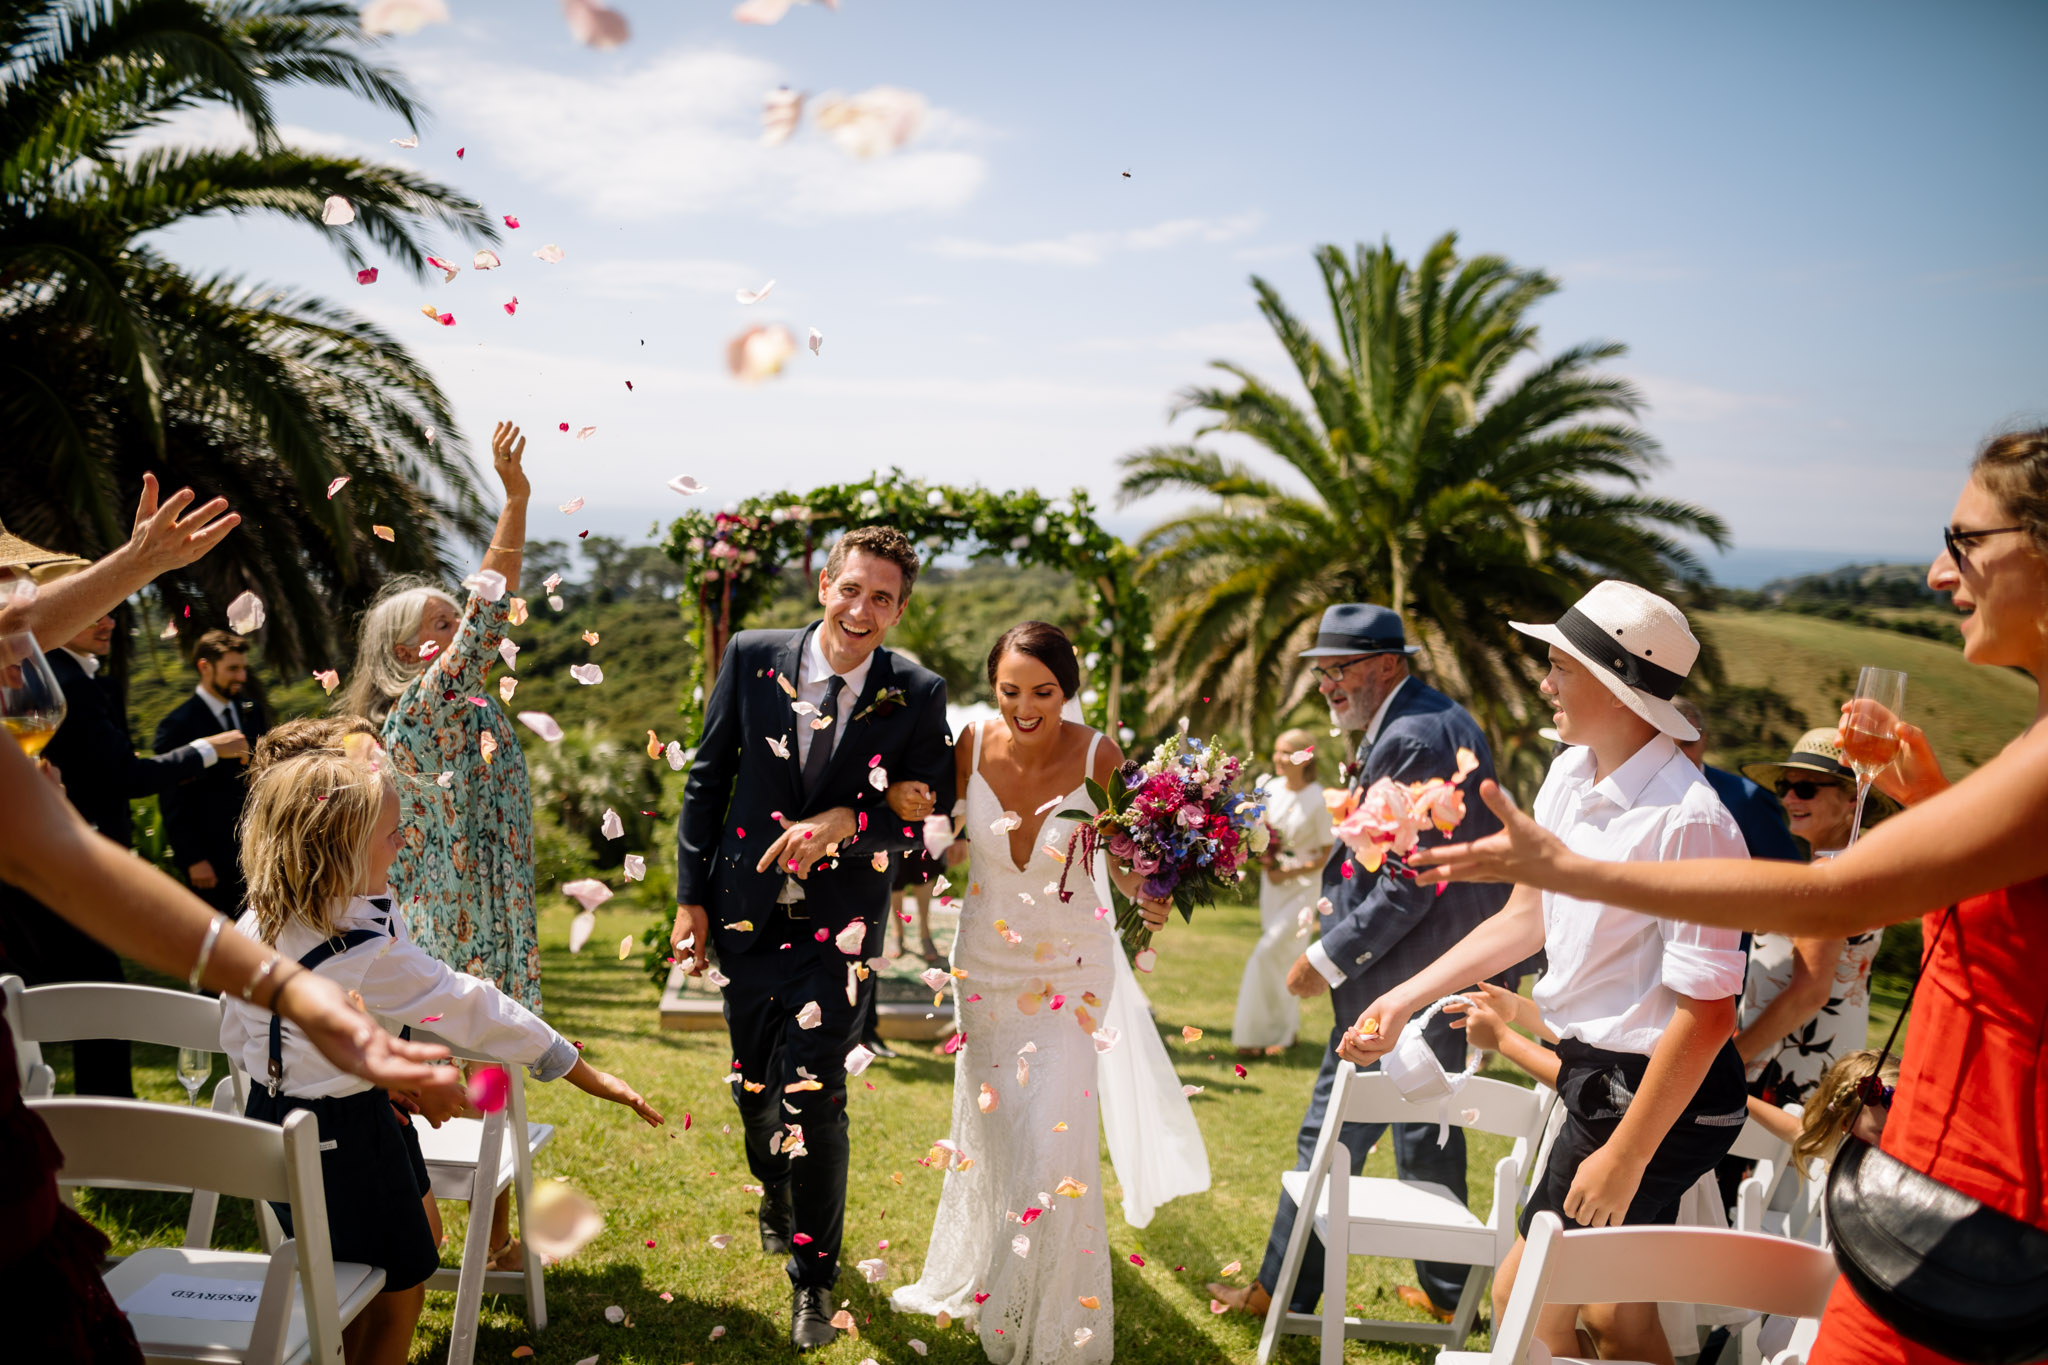 535_Alex-Tommo-wedding-the-official-photographers_AOP_0798.jpg